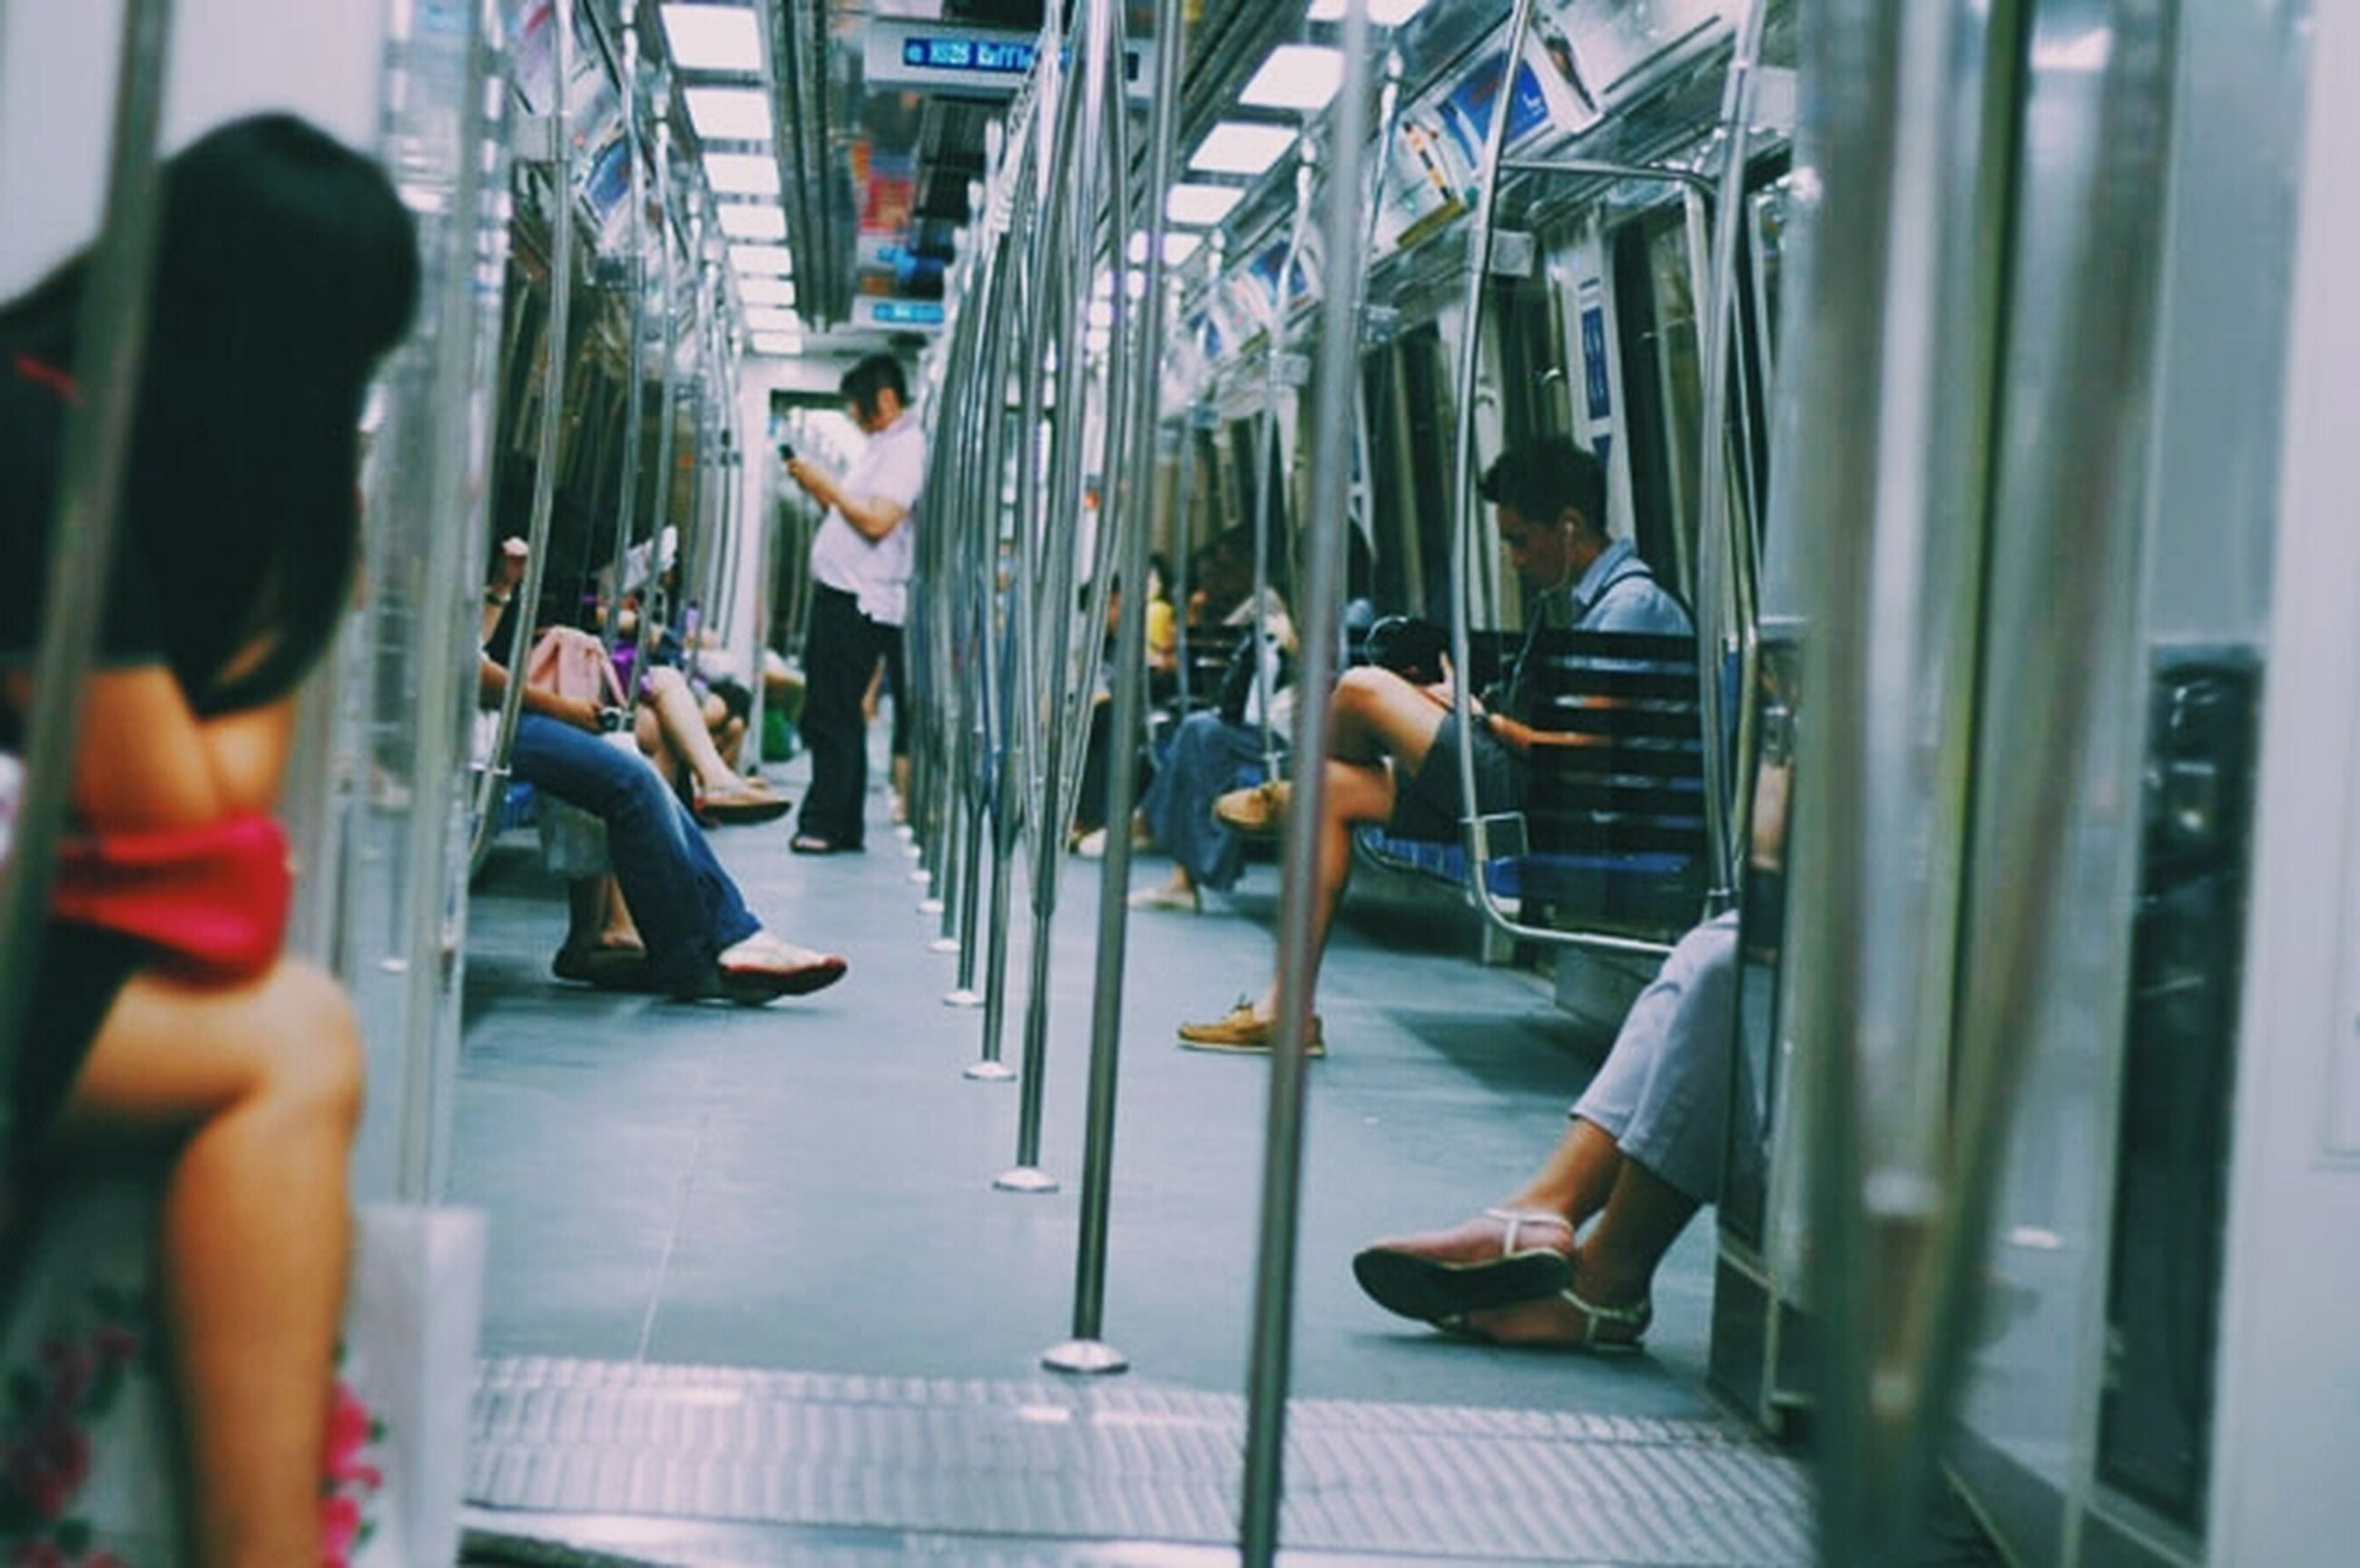 indoors, lifestyles, men, person, leisure activity, escalator, rear view, medium group of people, walking, sitting, full length, casual clothing, technology, low section, standing, city life